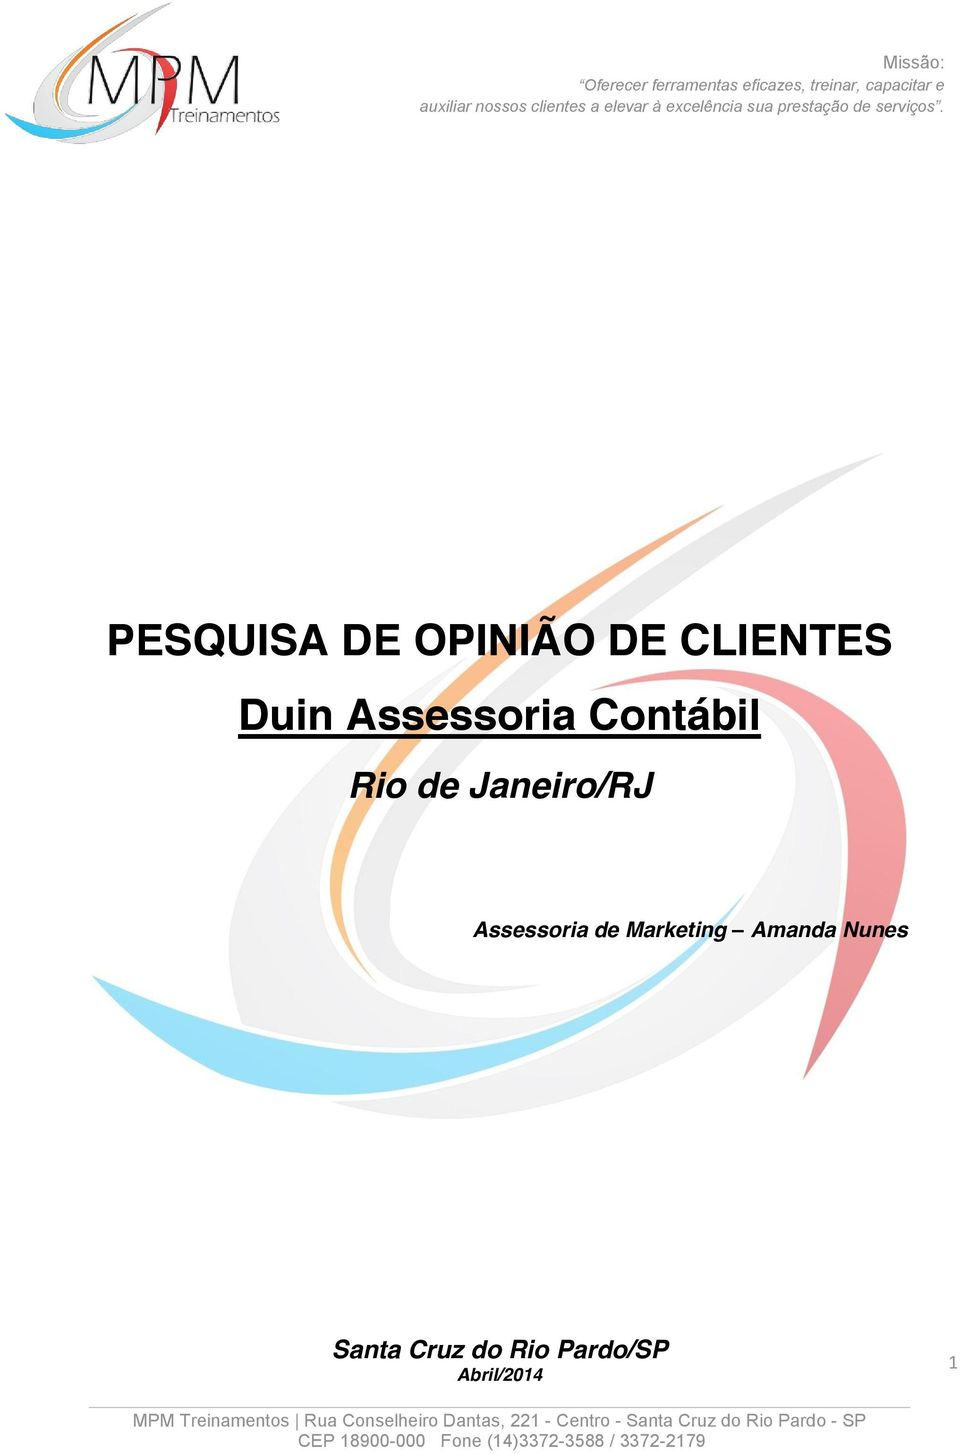 Assessoria de Marketing Amanda Nunes